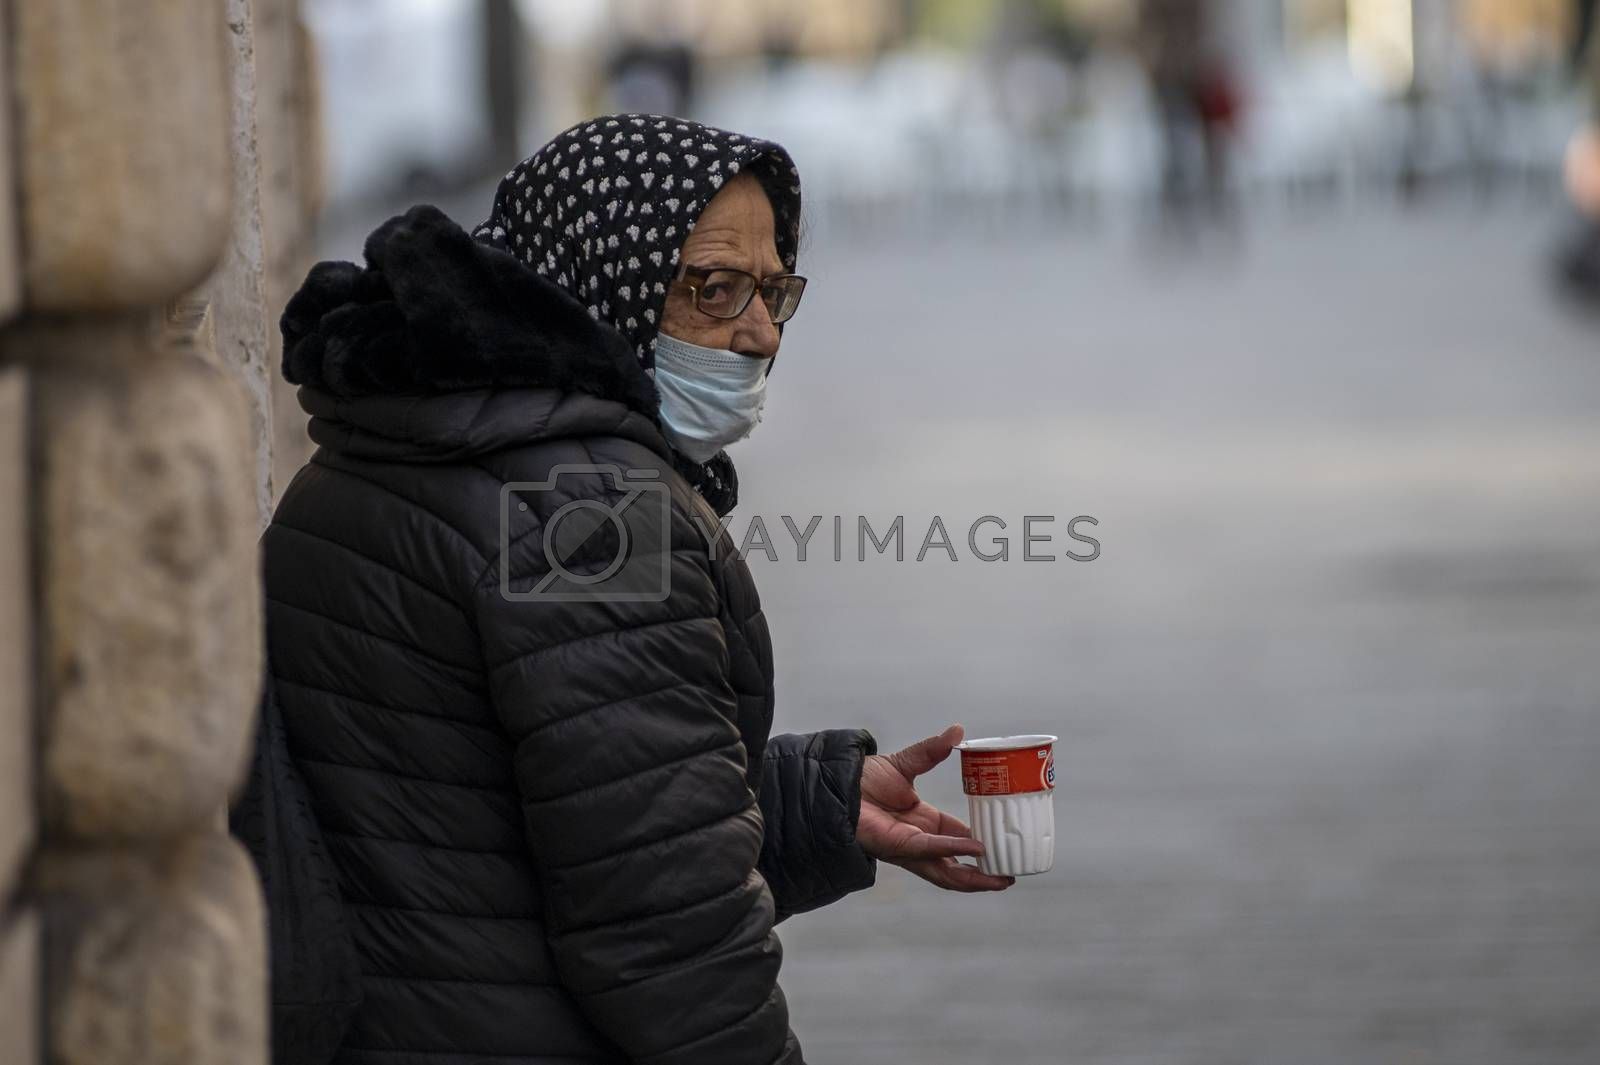 terni,italy october 23 2020:woman begging with medical mask in city center